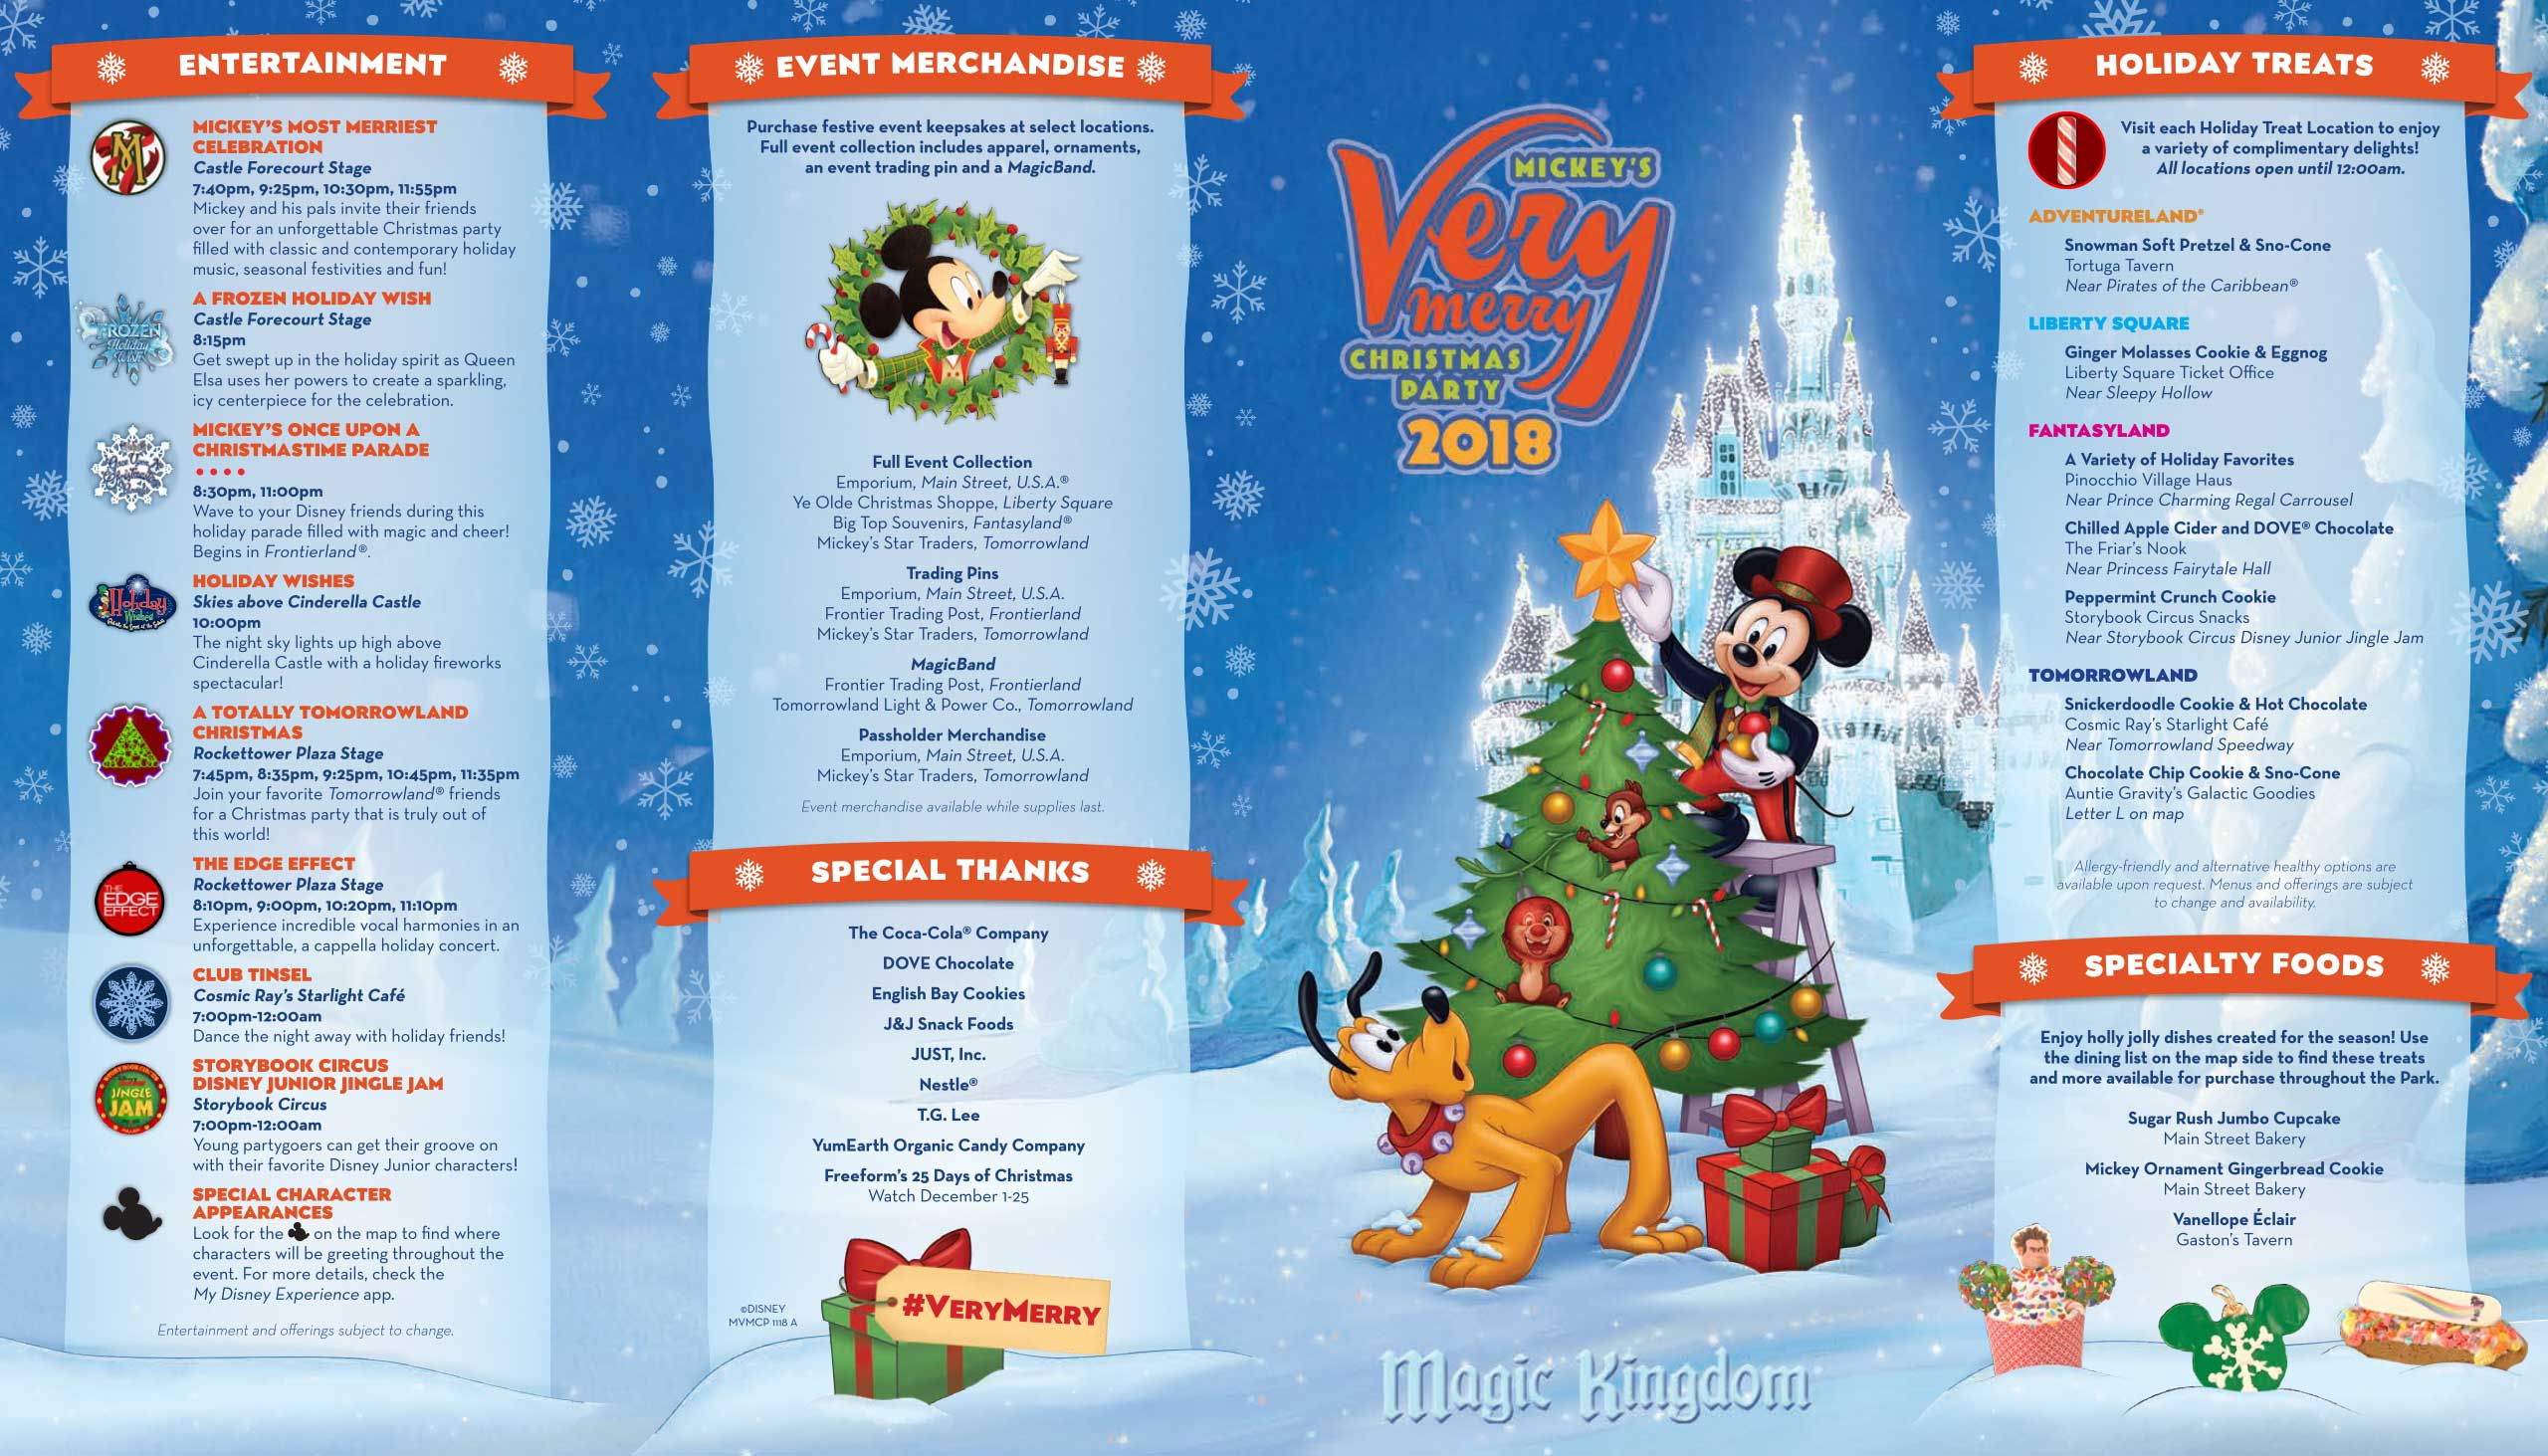 Mickey's Very Merry Christmas Party 2018 guide map